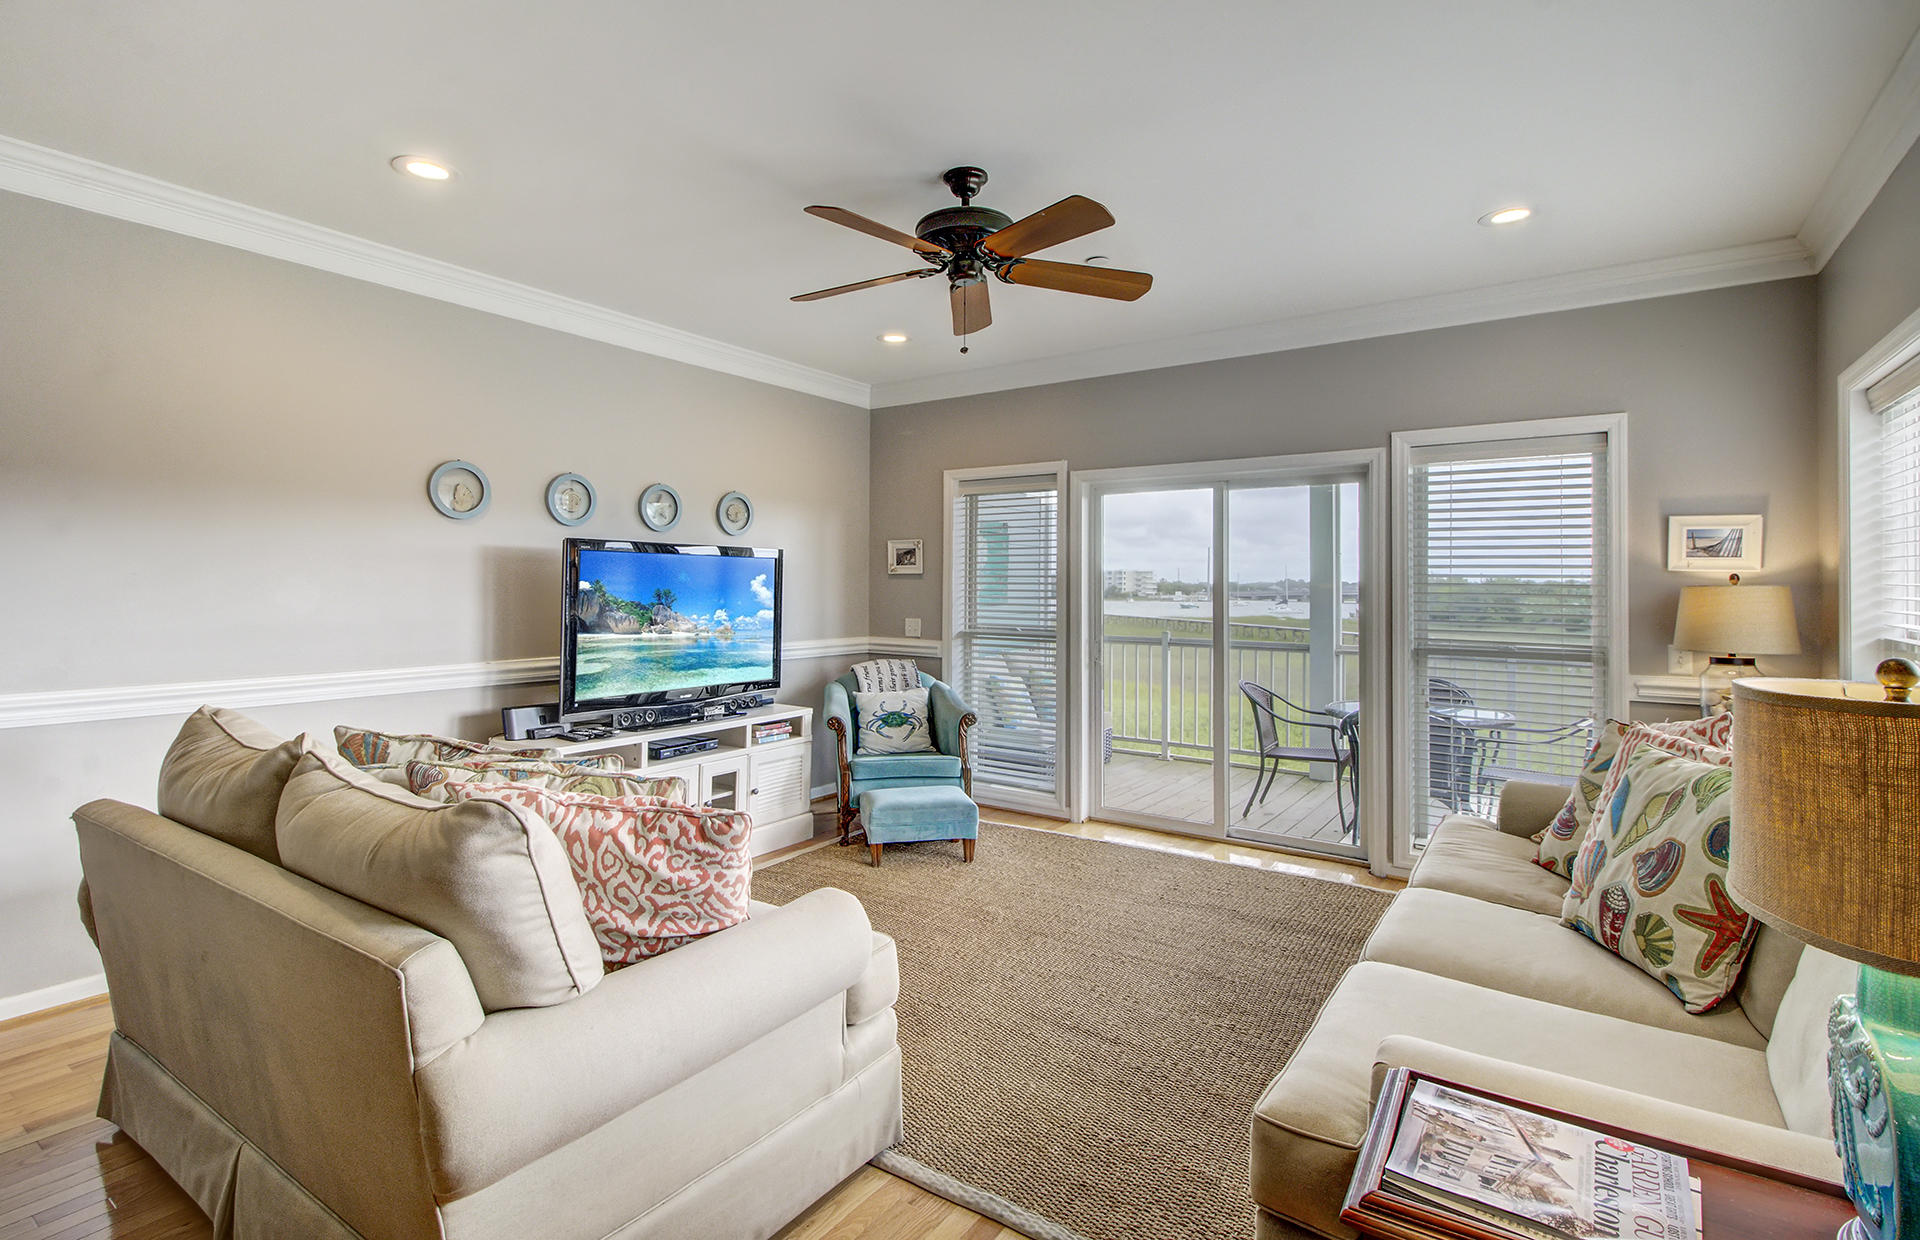 Waters Edge Homes For Sale - 80 2nd, Folly Beach, SC - 12